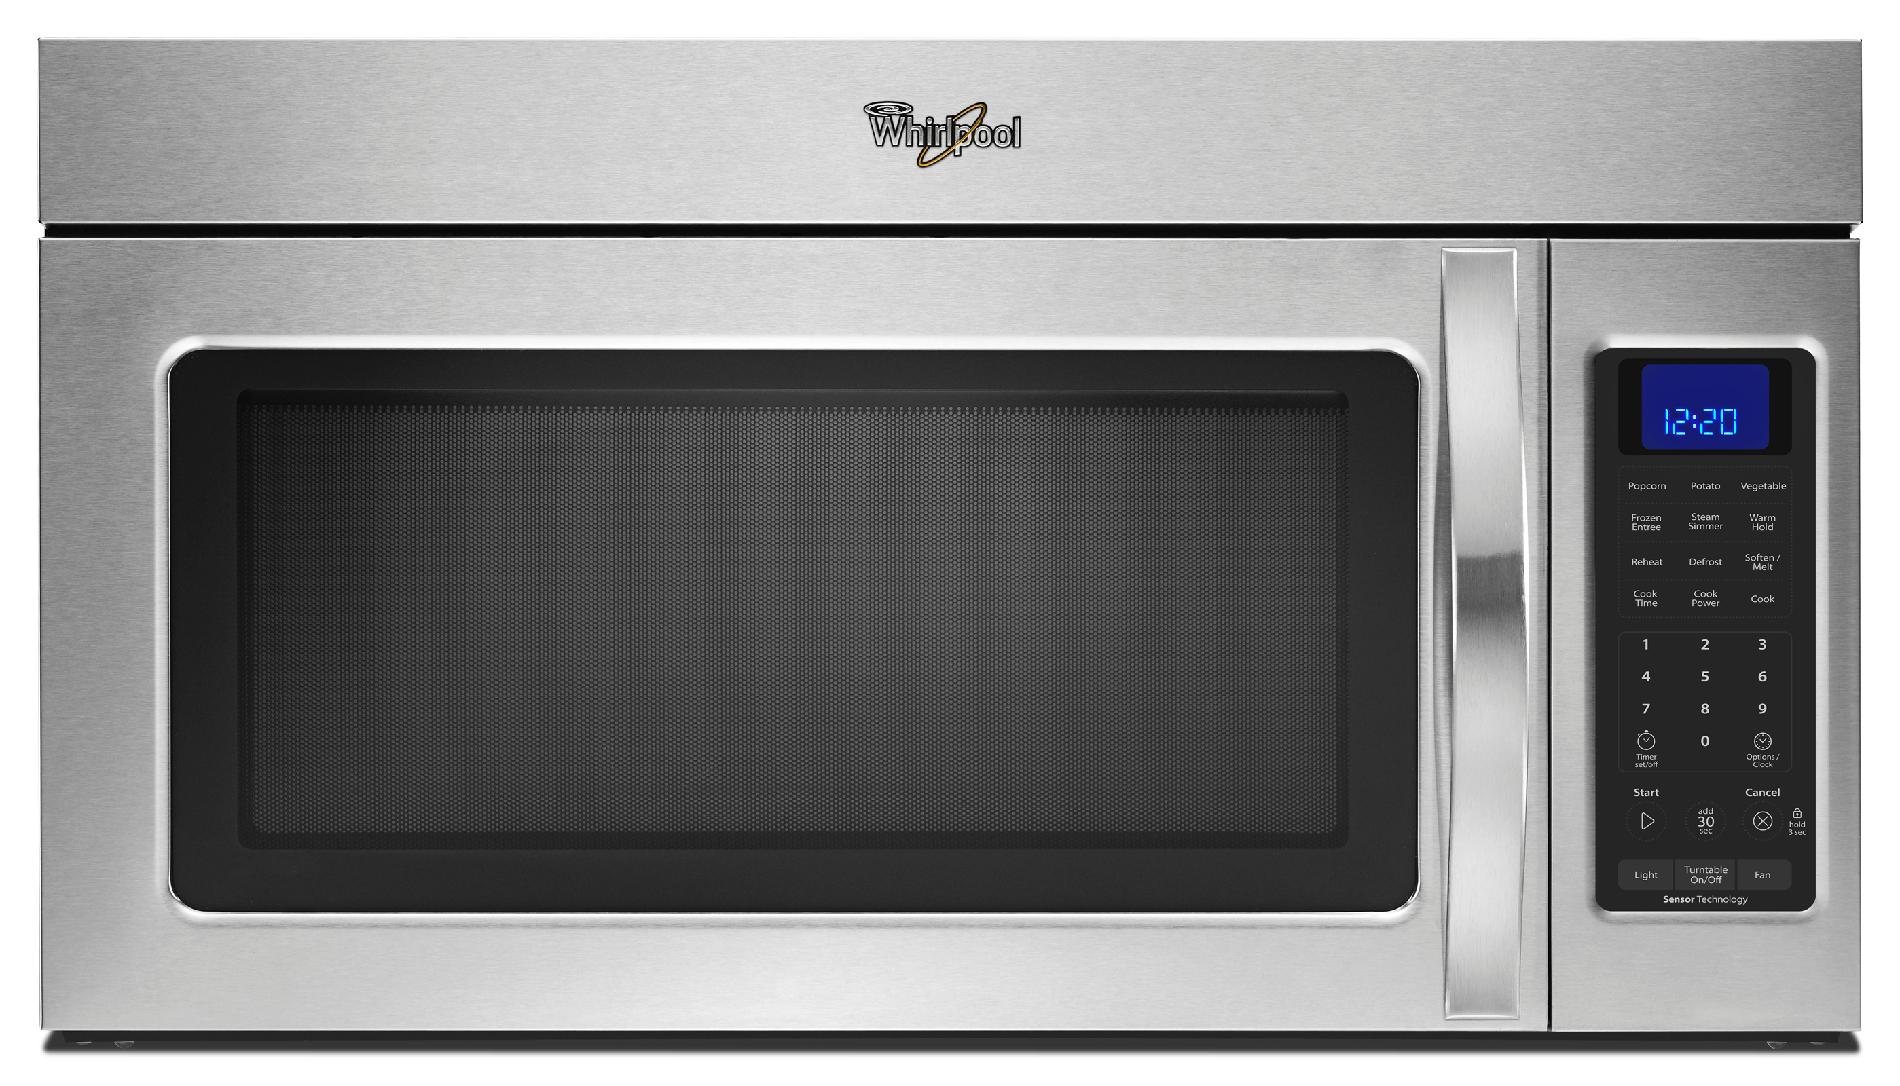 1.9 cu. ft. Capacity Over-the-Range Steam Microwave With Sensor Cooking, Stainless Steel